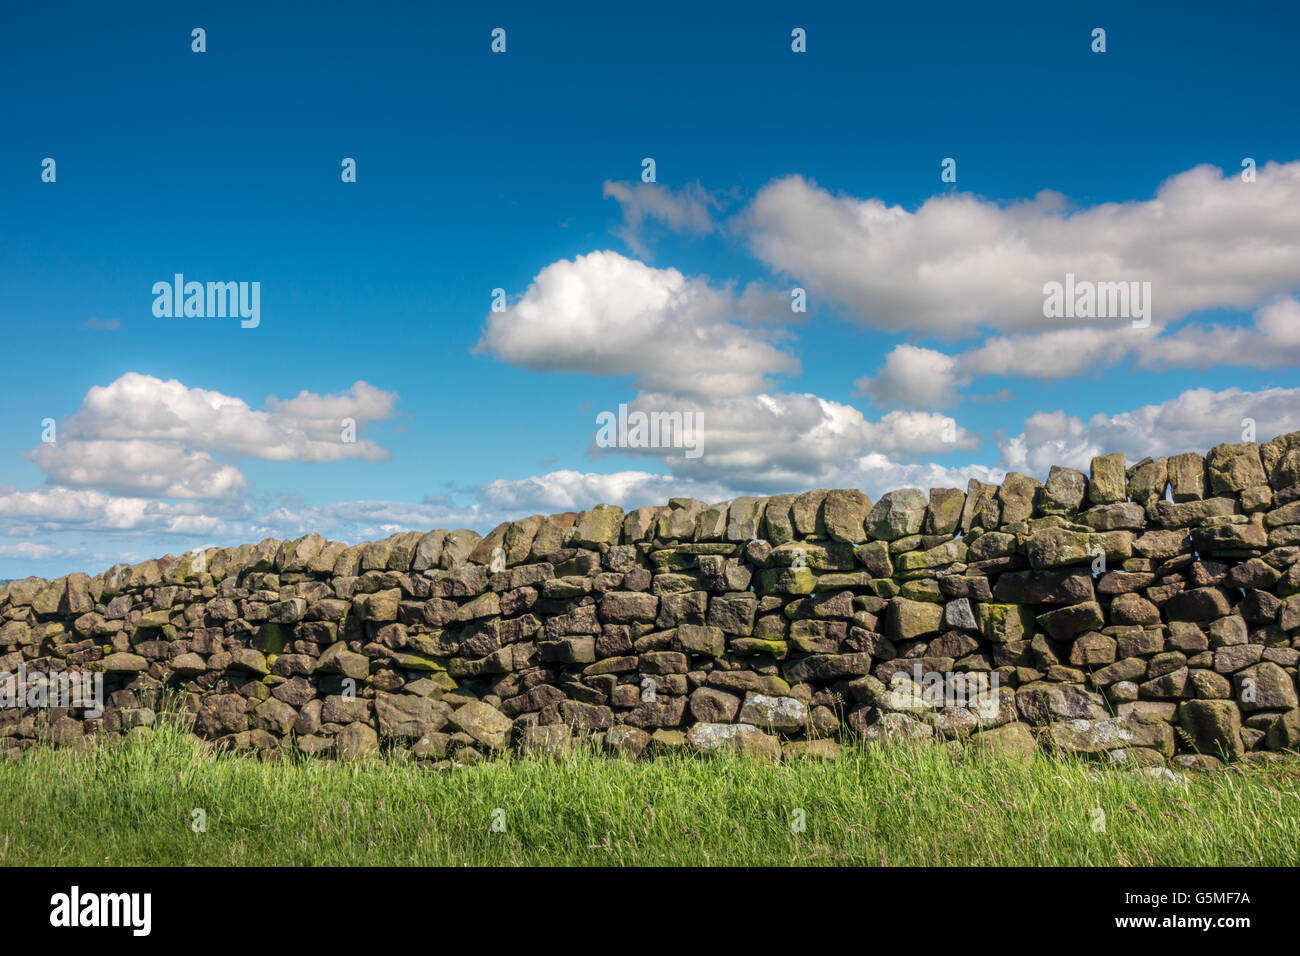 Gritstone stone wall with blue sky and green grass, Yorkshire, England, UK - Stock Image